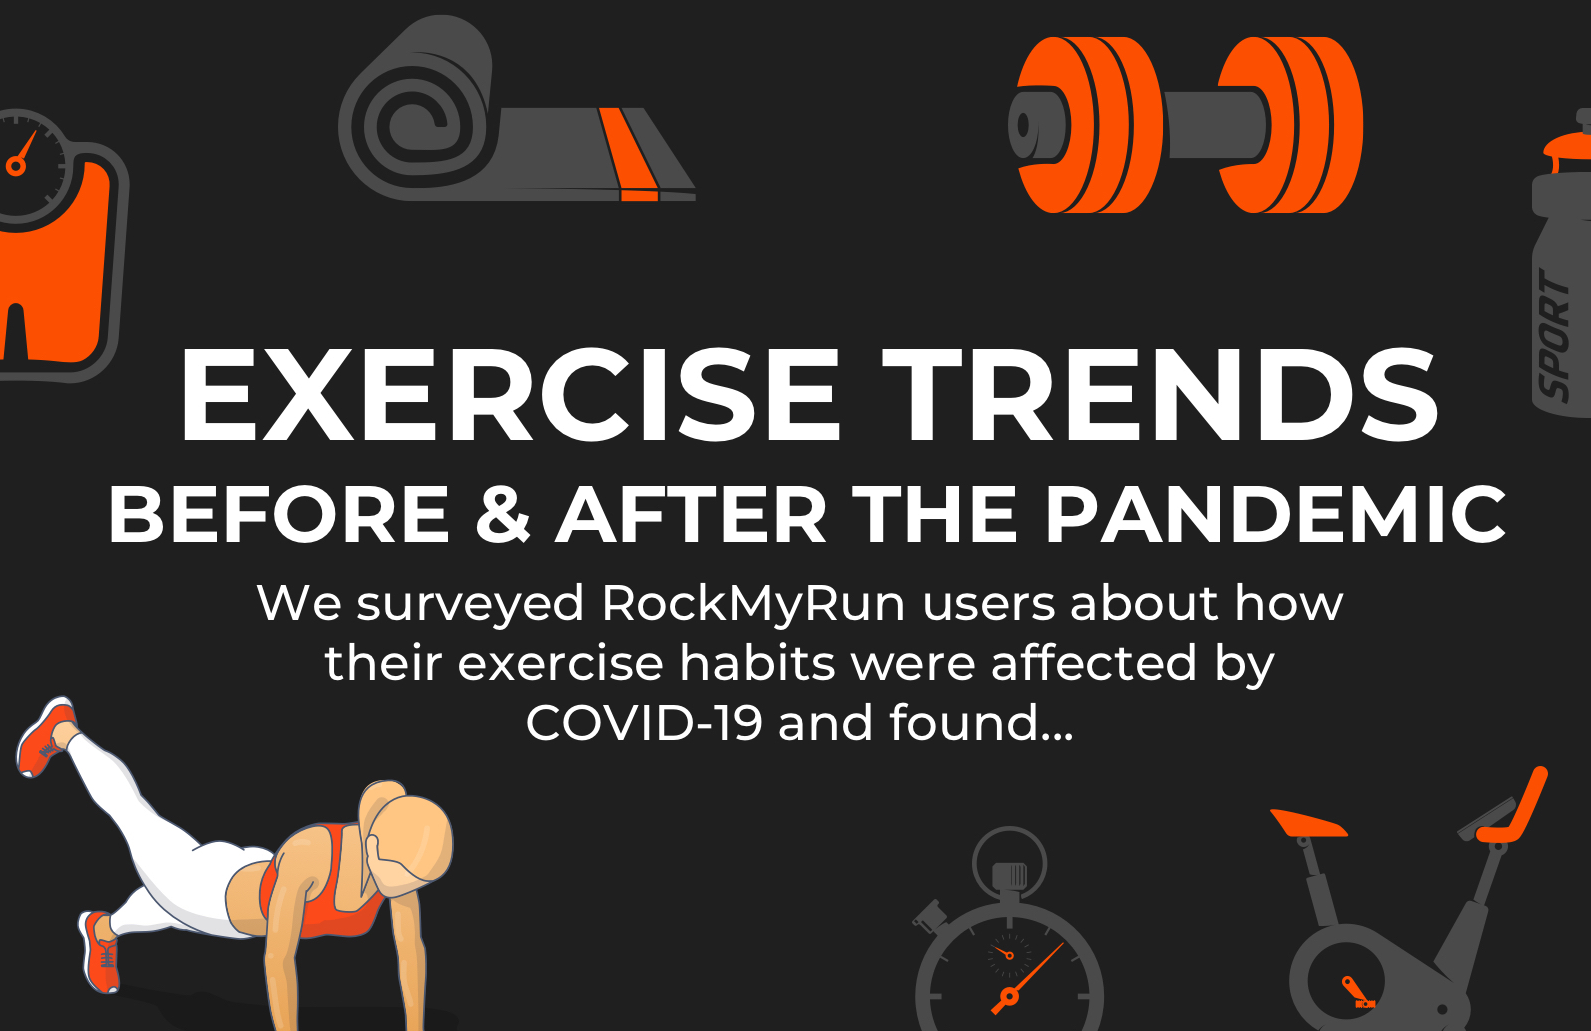 Exercise Trends Before and After the Pandemic